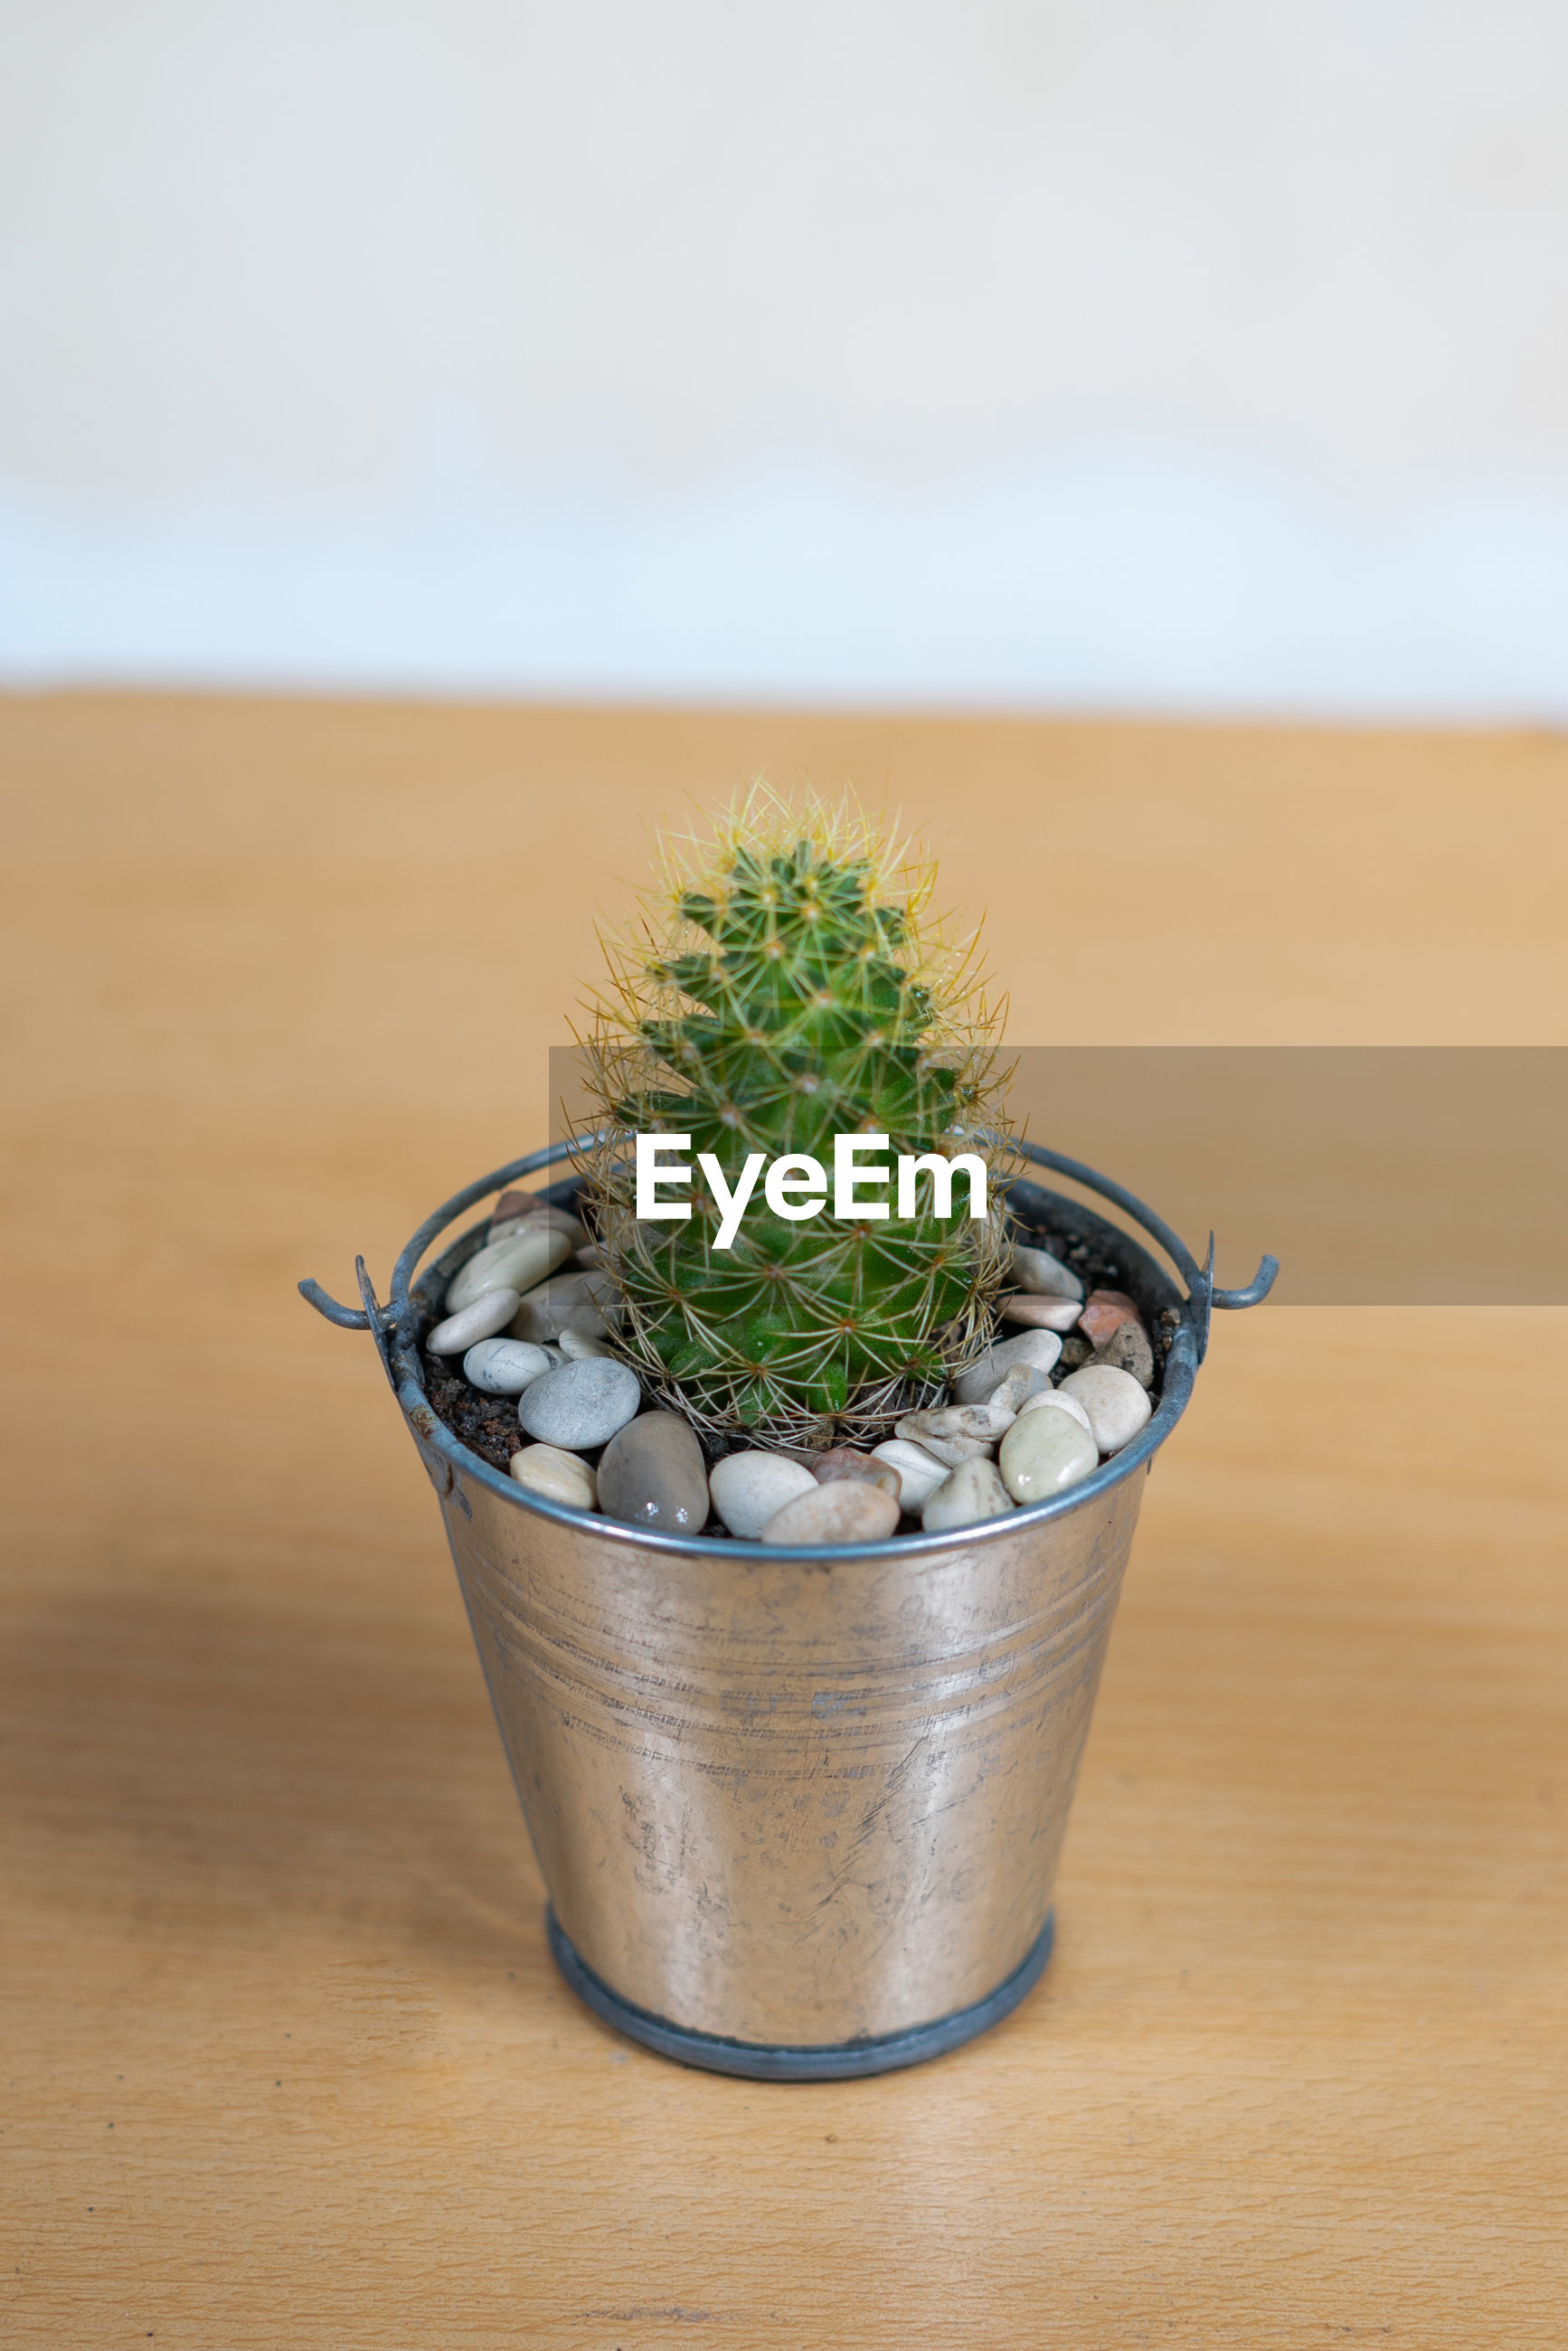 CLOSE-UP OF POTTED CACTUS PLANT ON TABLE